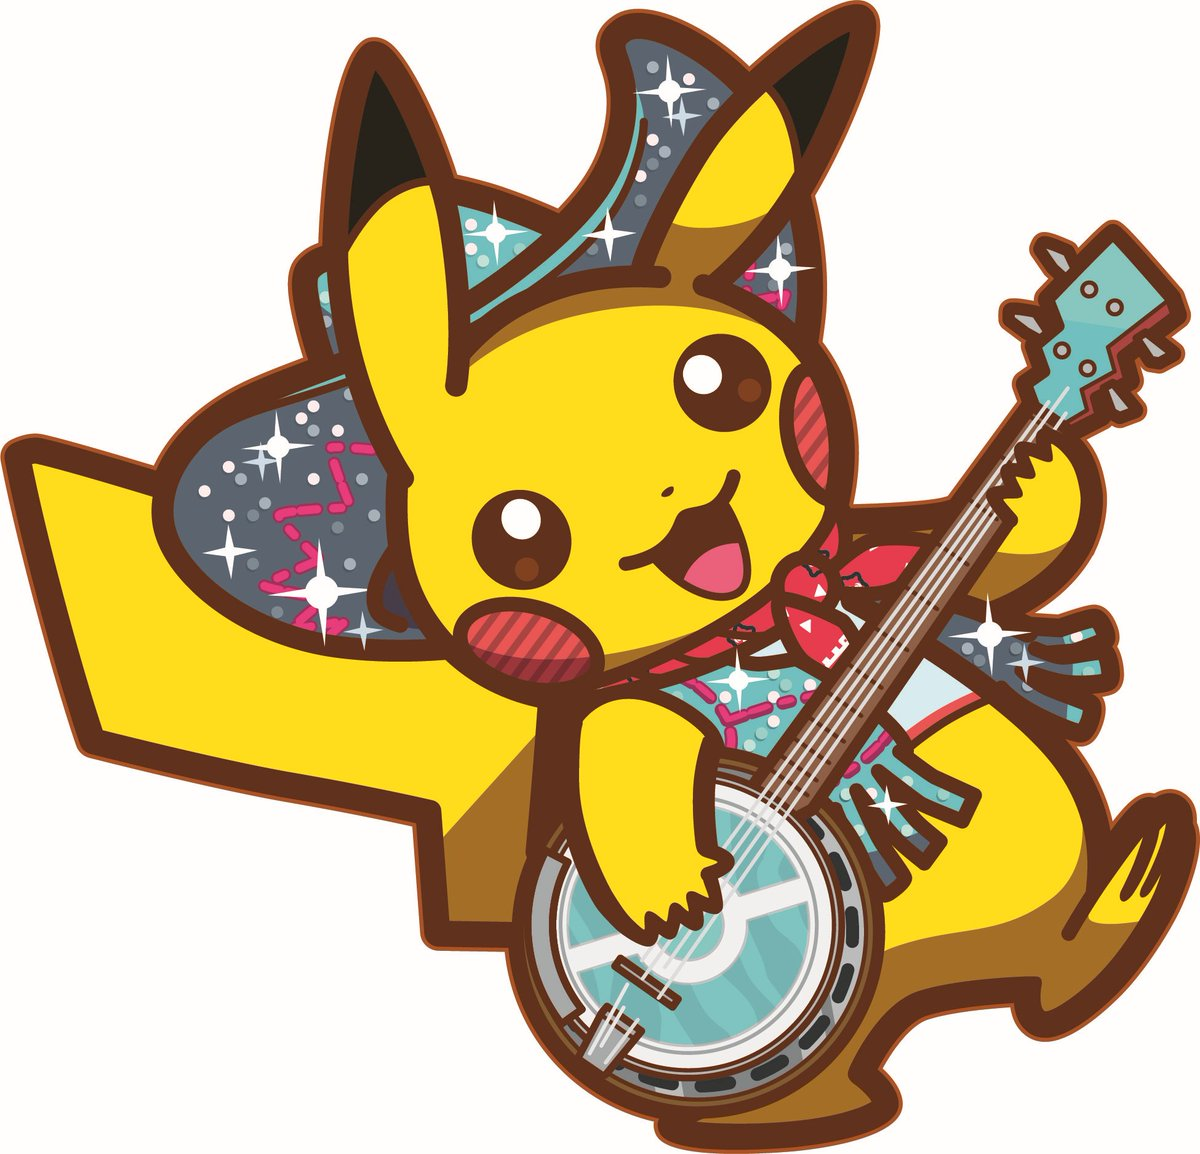 Serebii Picture: High quality artwork of Pikachu for the 2018 Pokémon World Championships and the 2018 World Championships artwork serebii.net/index2.shtml